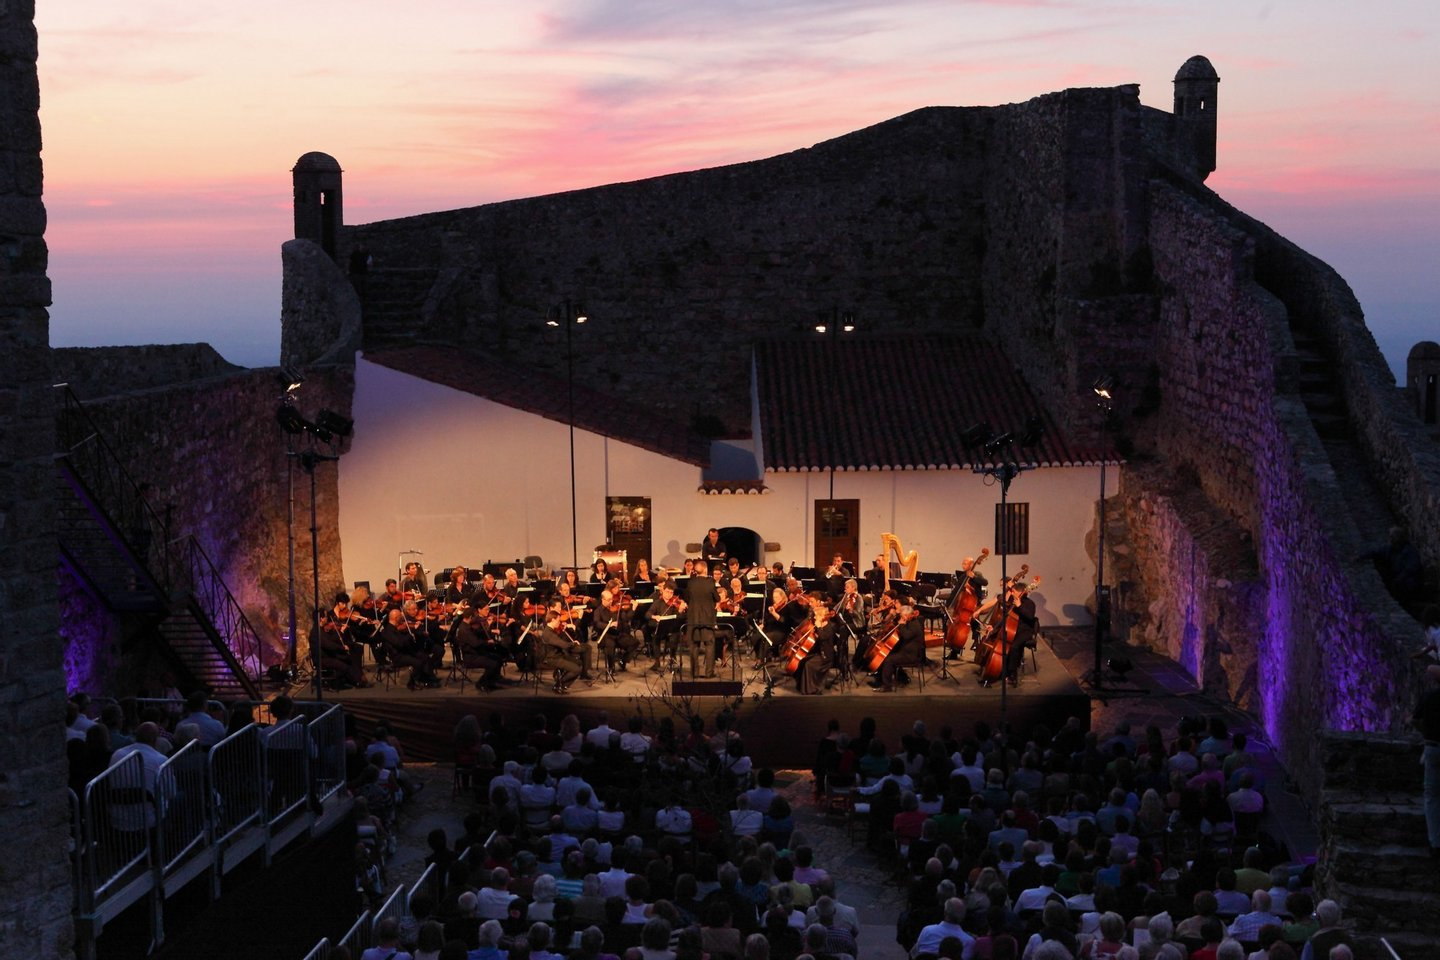 Marvão, 26/07/2014 - Concerto da Orquestra Gulbenkian com a soprano Juliane Banse, no âmbito do Festival de Marvão  ( Pedro Martins/Global Imagens )